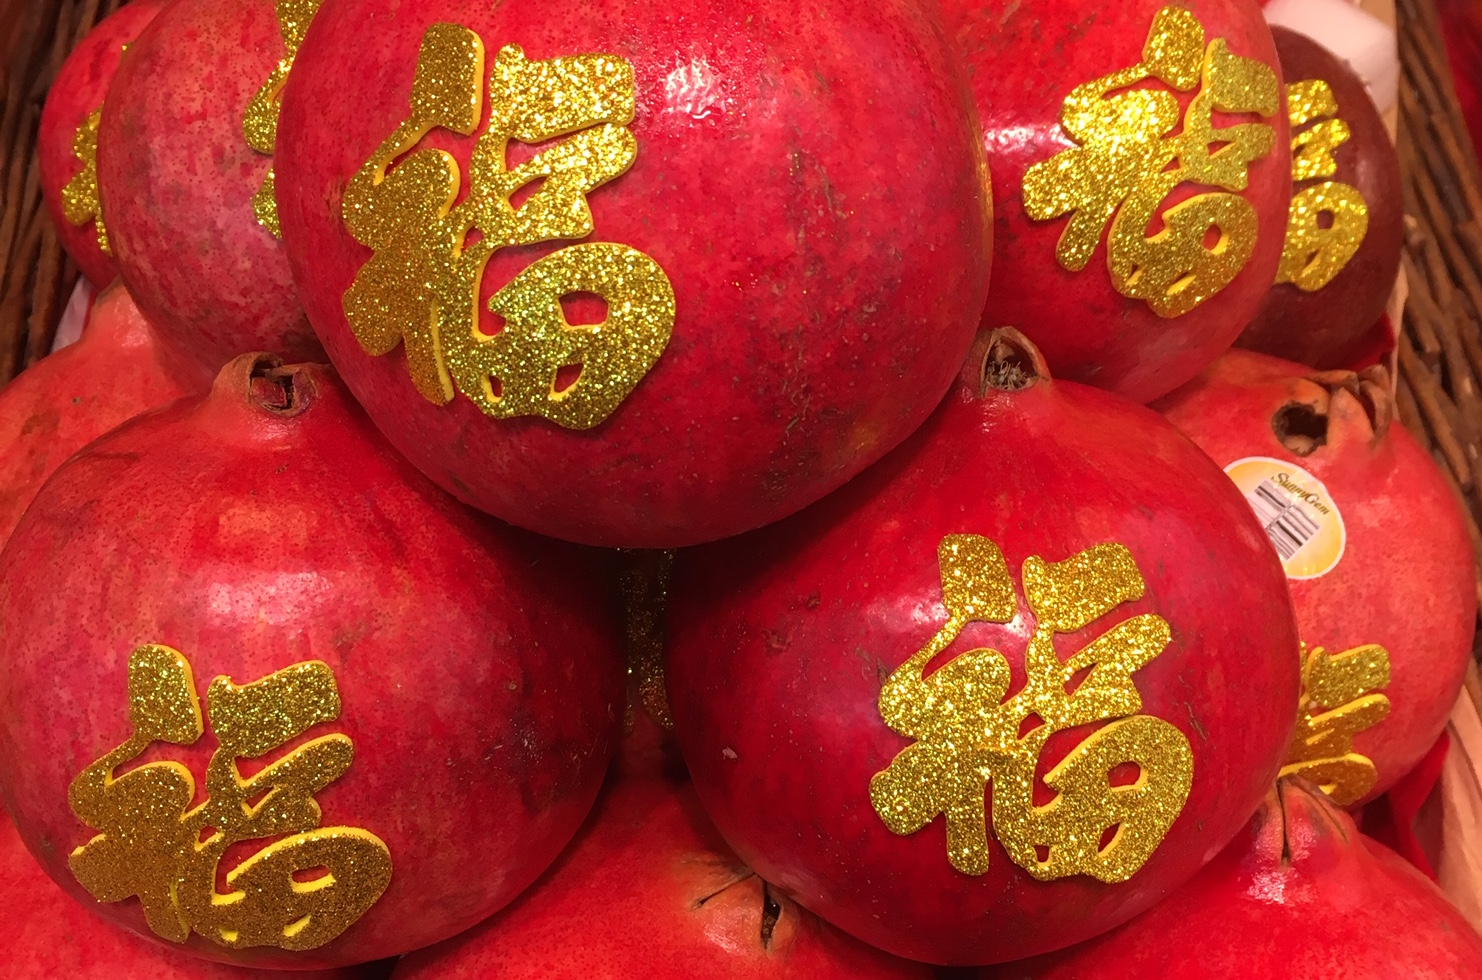 At Chinese New Year, food brings communities together